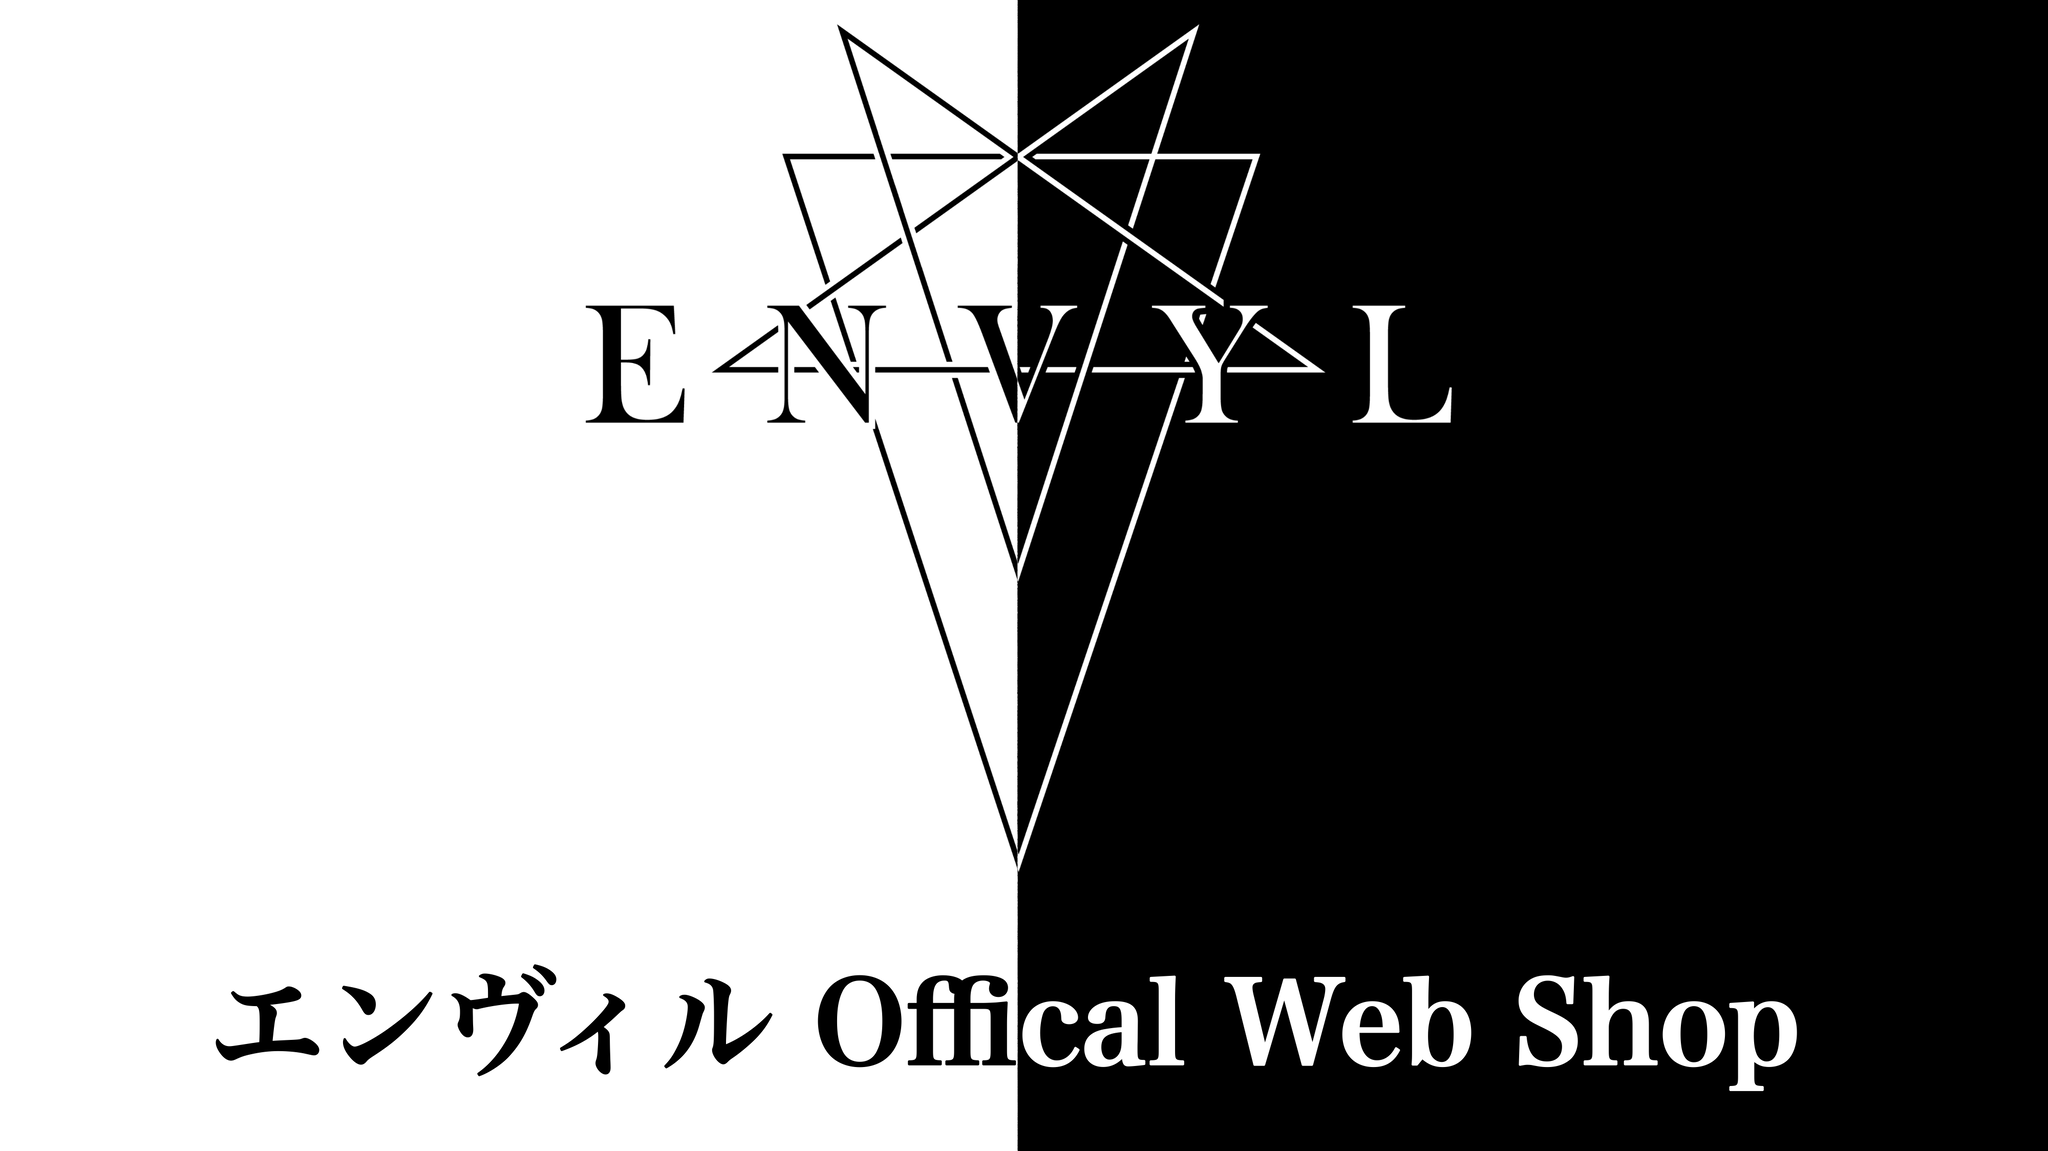 エンヴィル OFFICIAL WEB SHOP